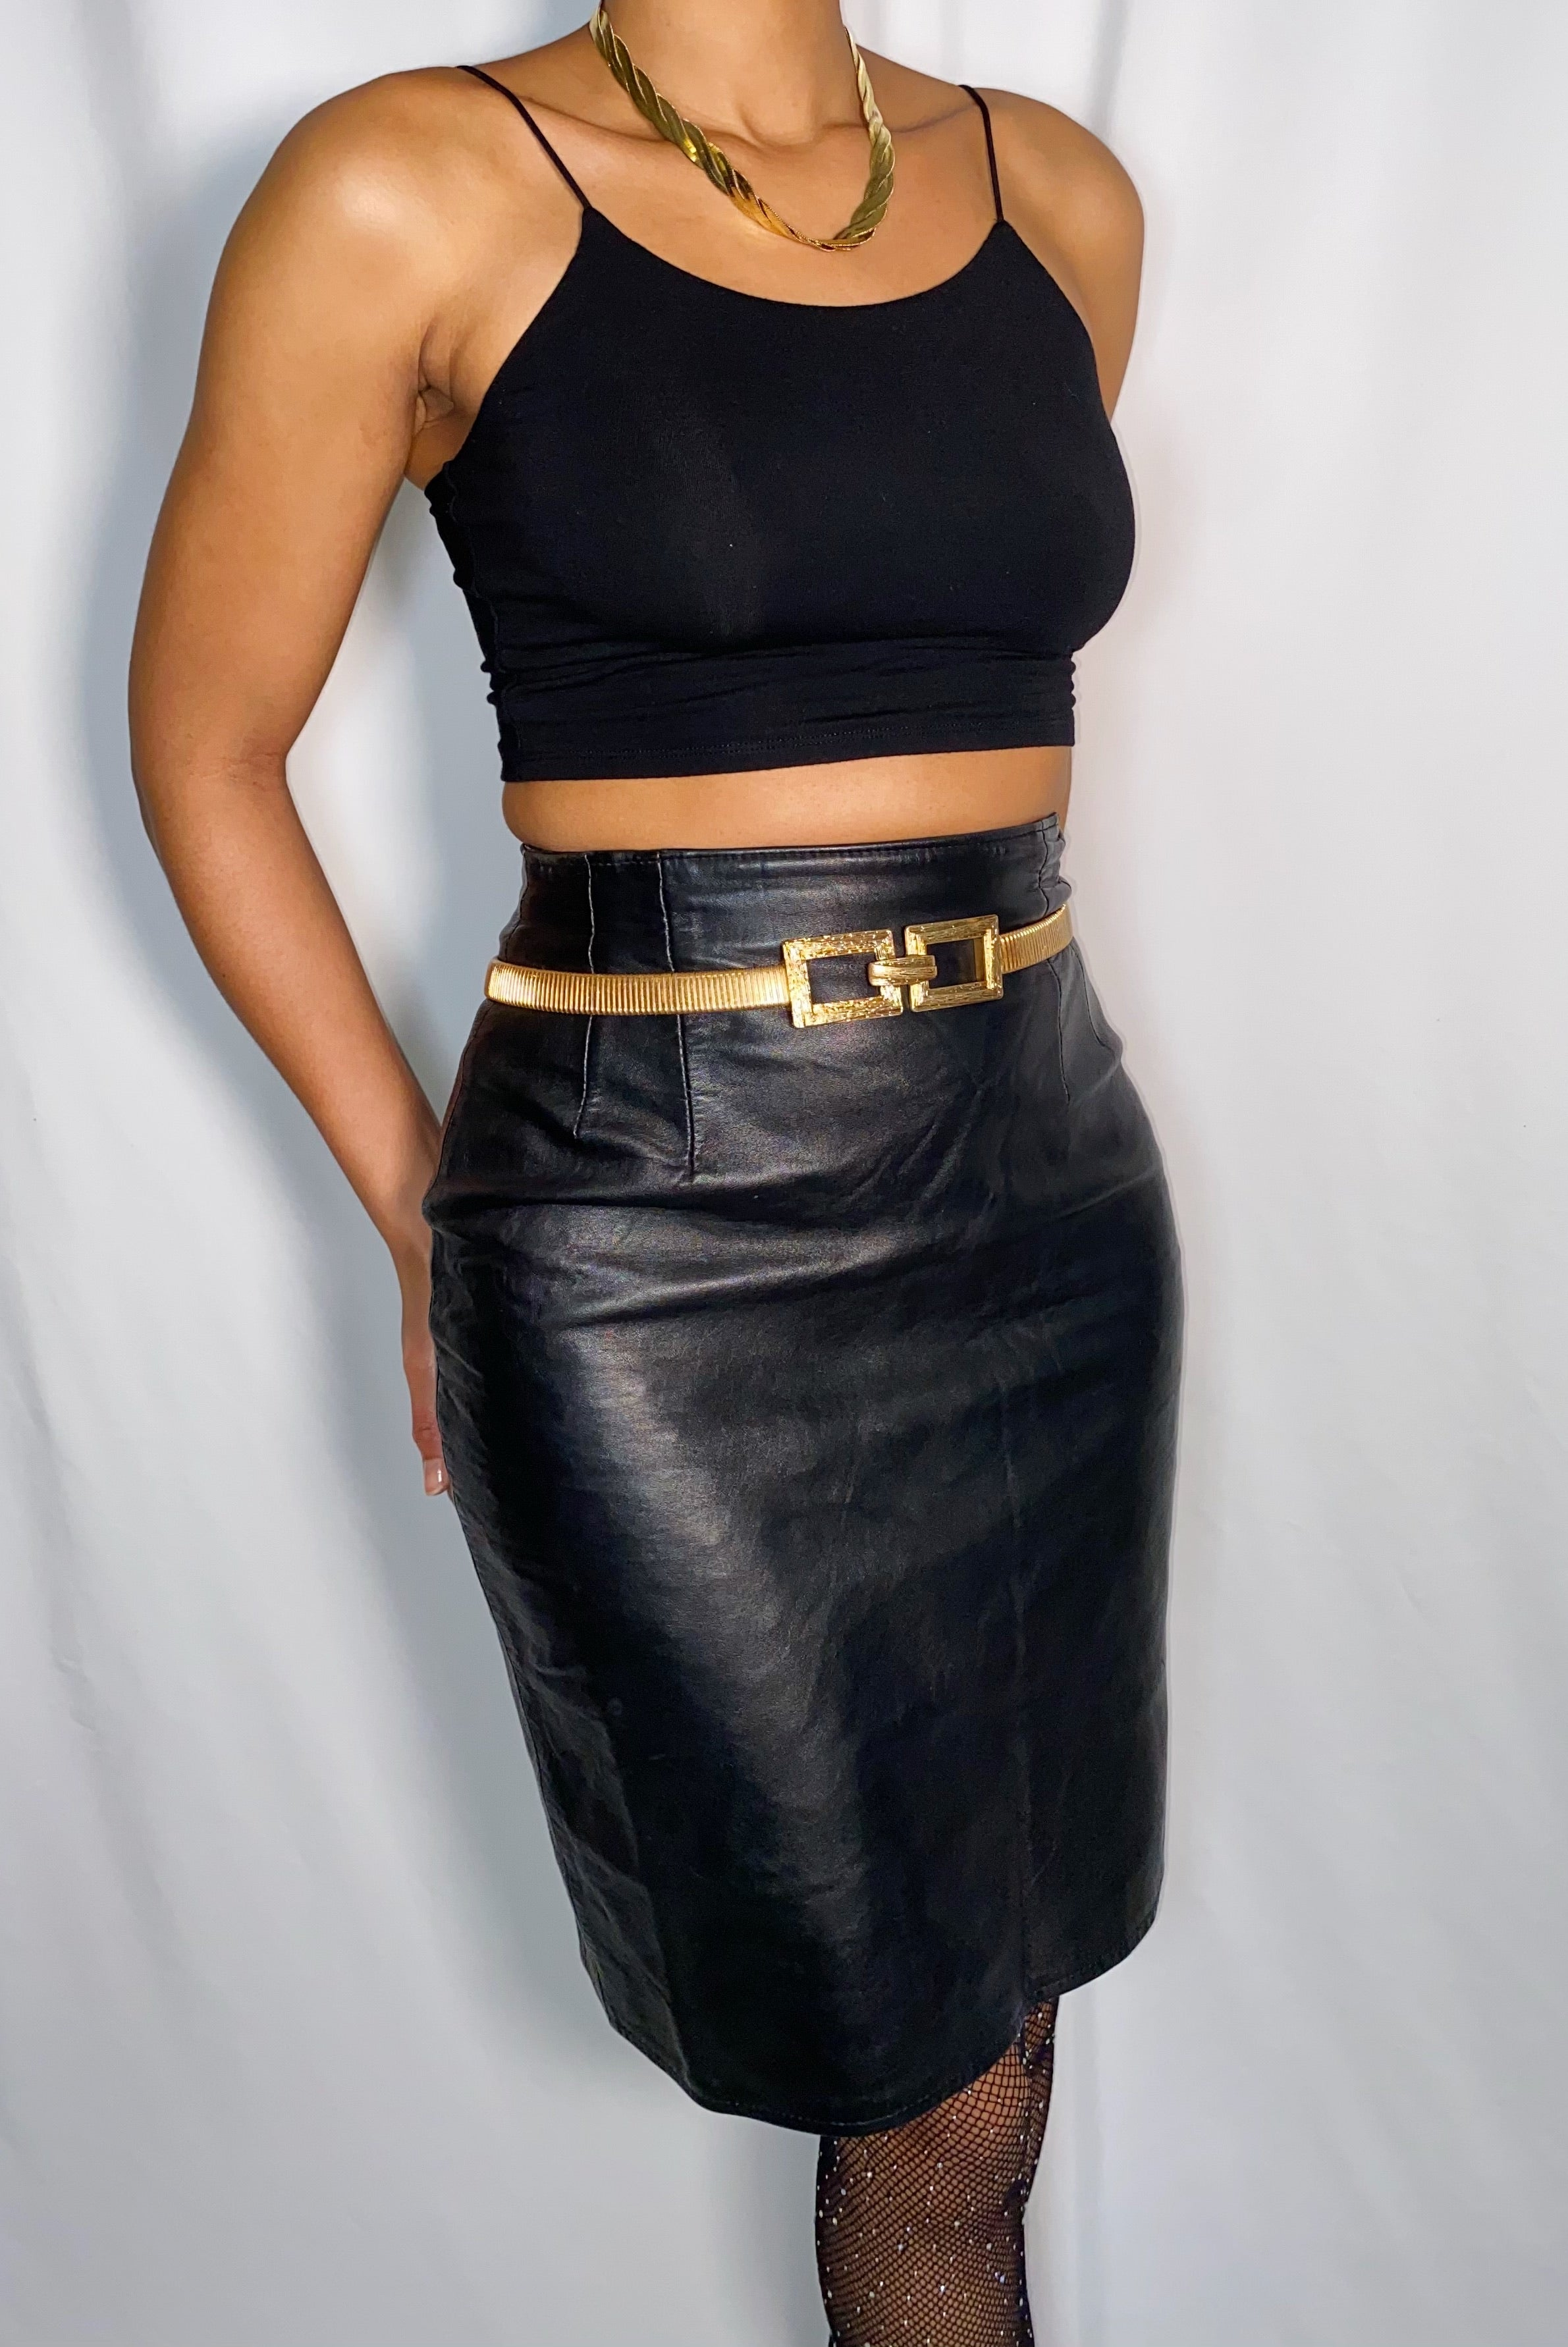 Vintage Lotus Black Genuine Leather High Waist Pencil Skirt (size 6)